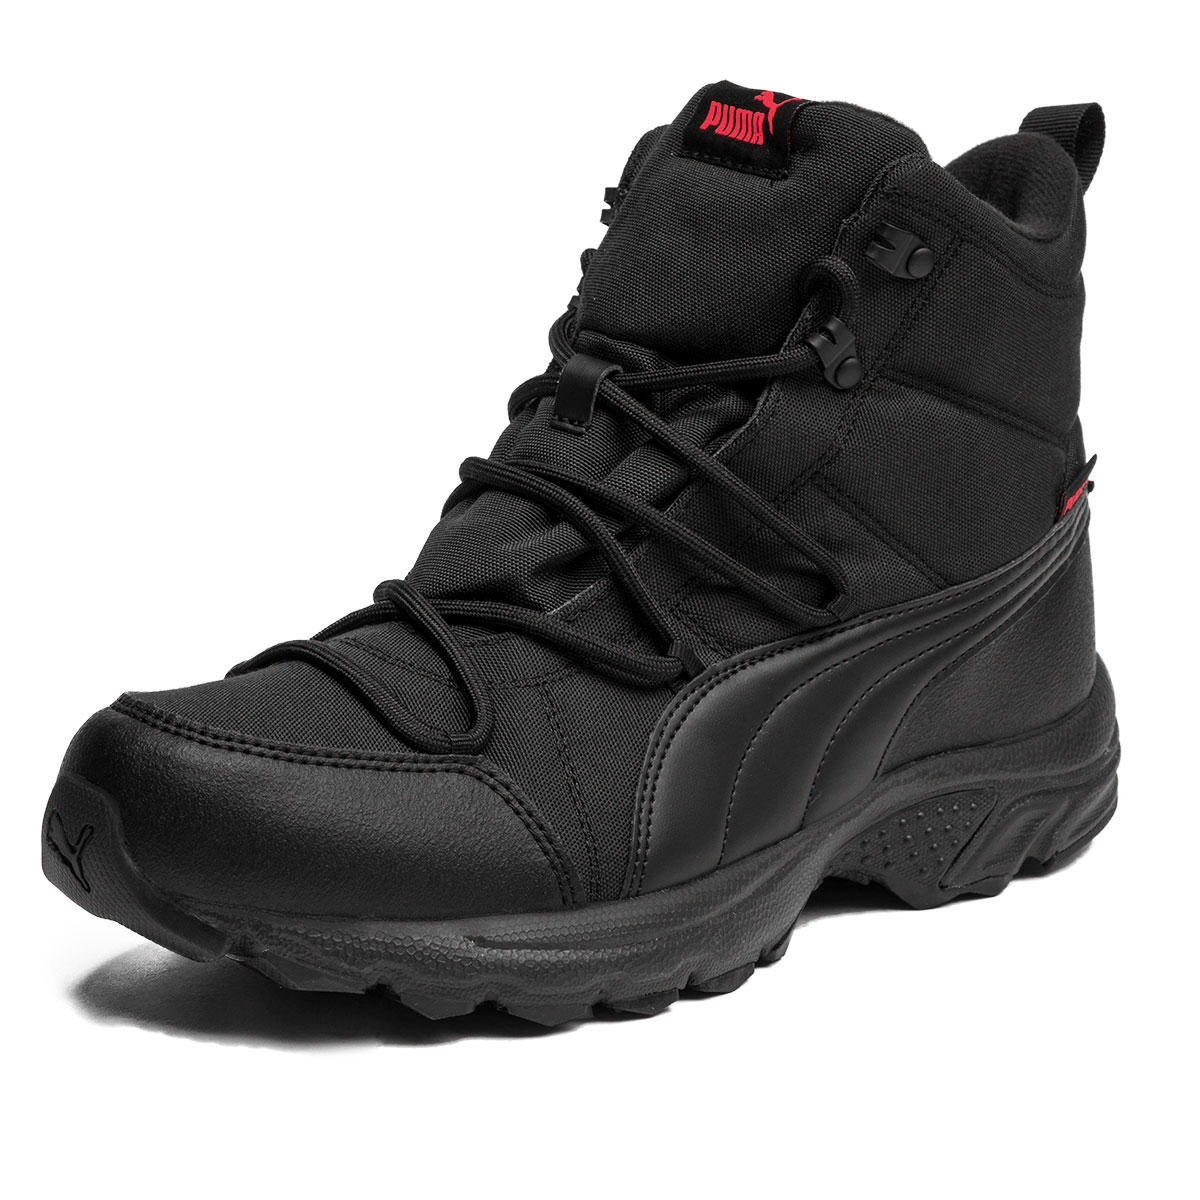 Зимни боти Puma Axis TR Boot Winter Pure-Tex